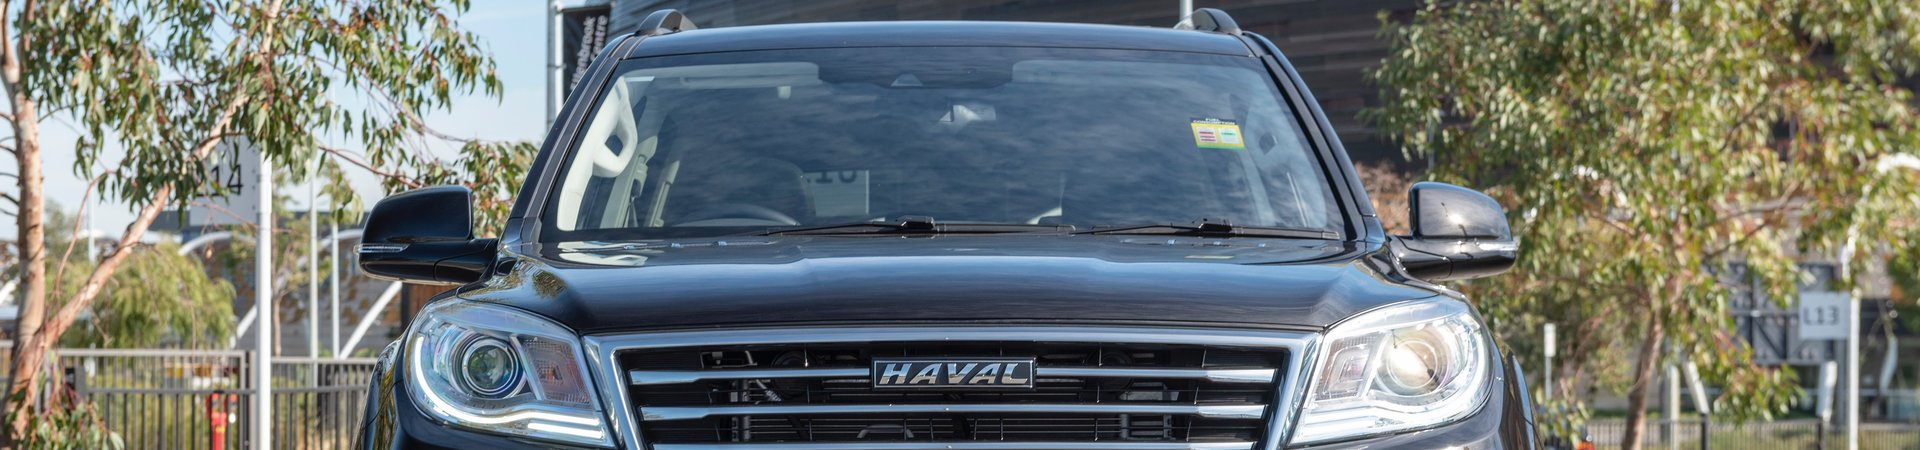 Autostrada Haval SUV for Sale Perth